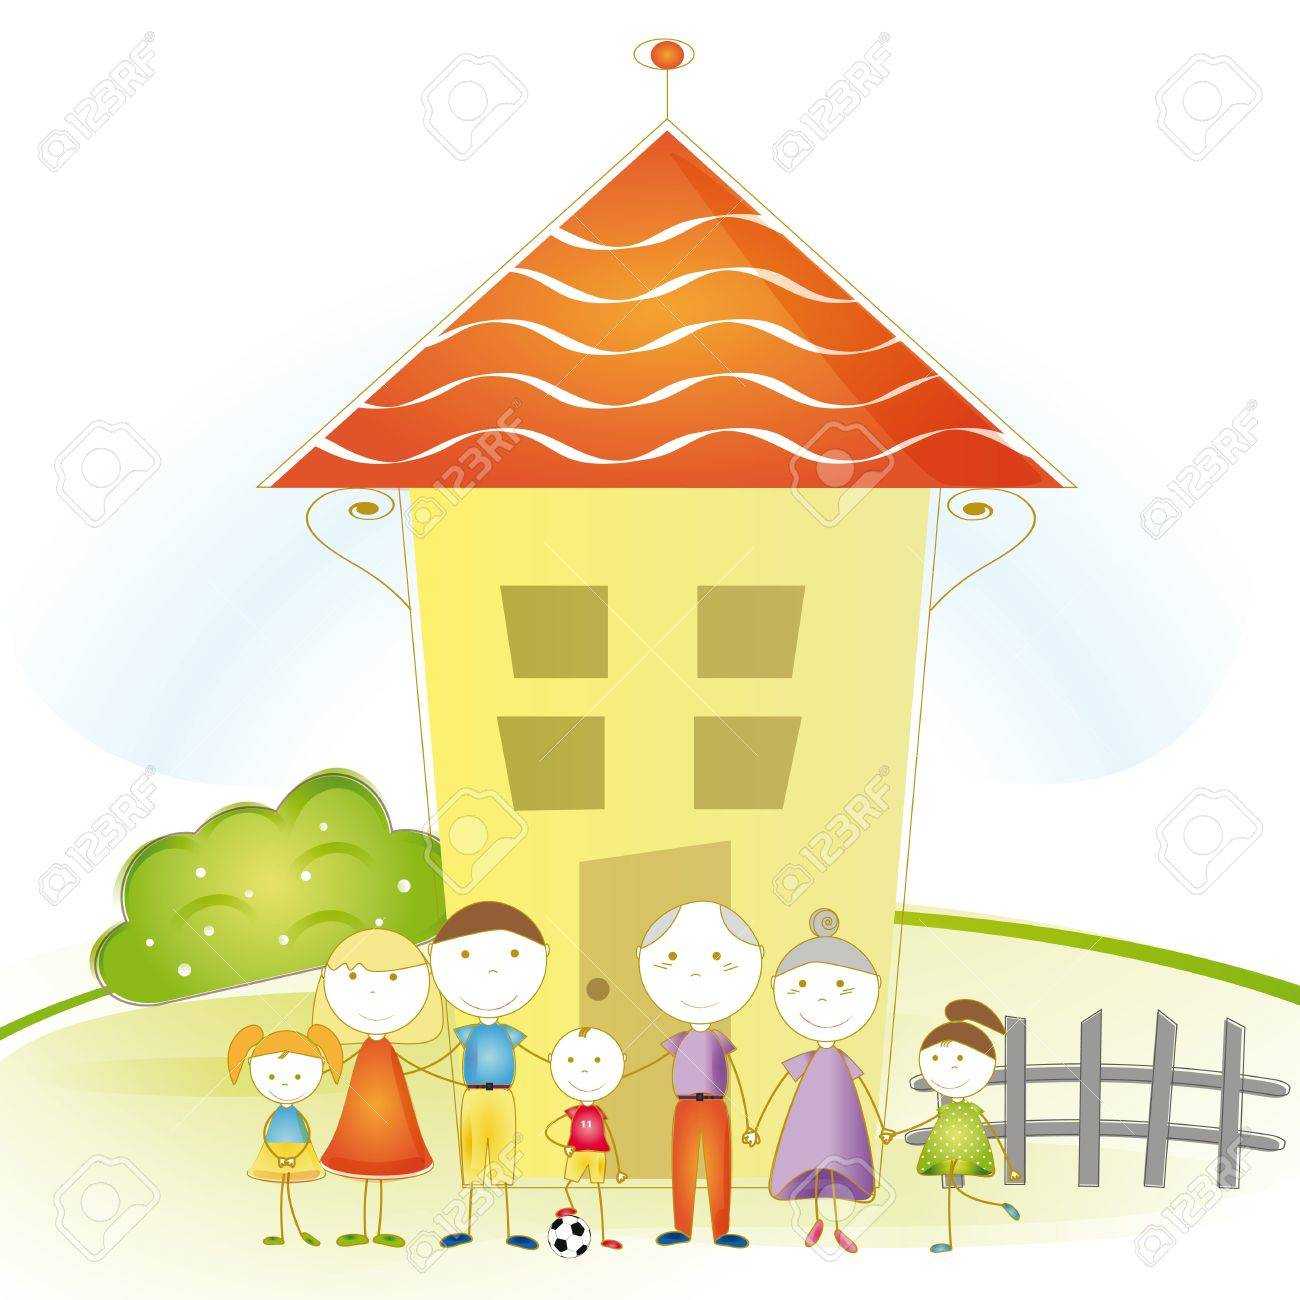 Sensational Cute And Happy All Family With As House Royalty Free Cliparts Largest Home Design Picture Inspirations Pitcheantrous